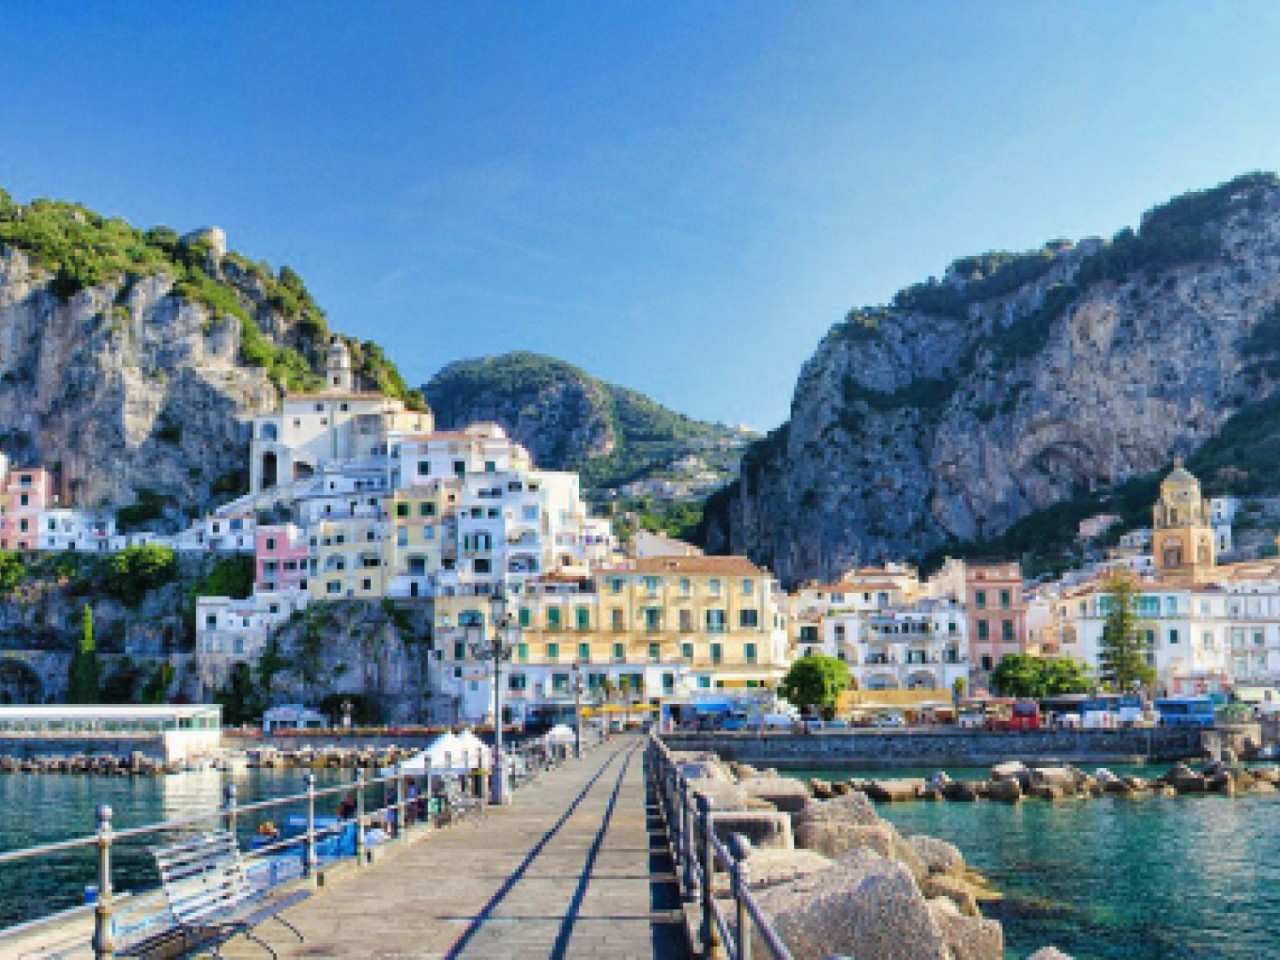 GROUPS: Pearls of the Mediterranean: Paestum, Amalfi and..